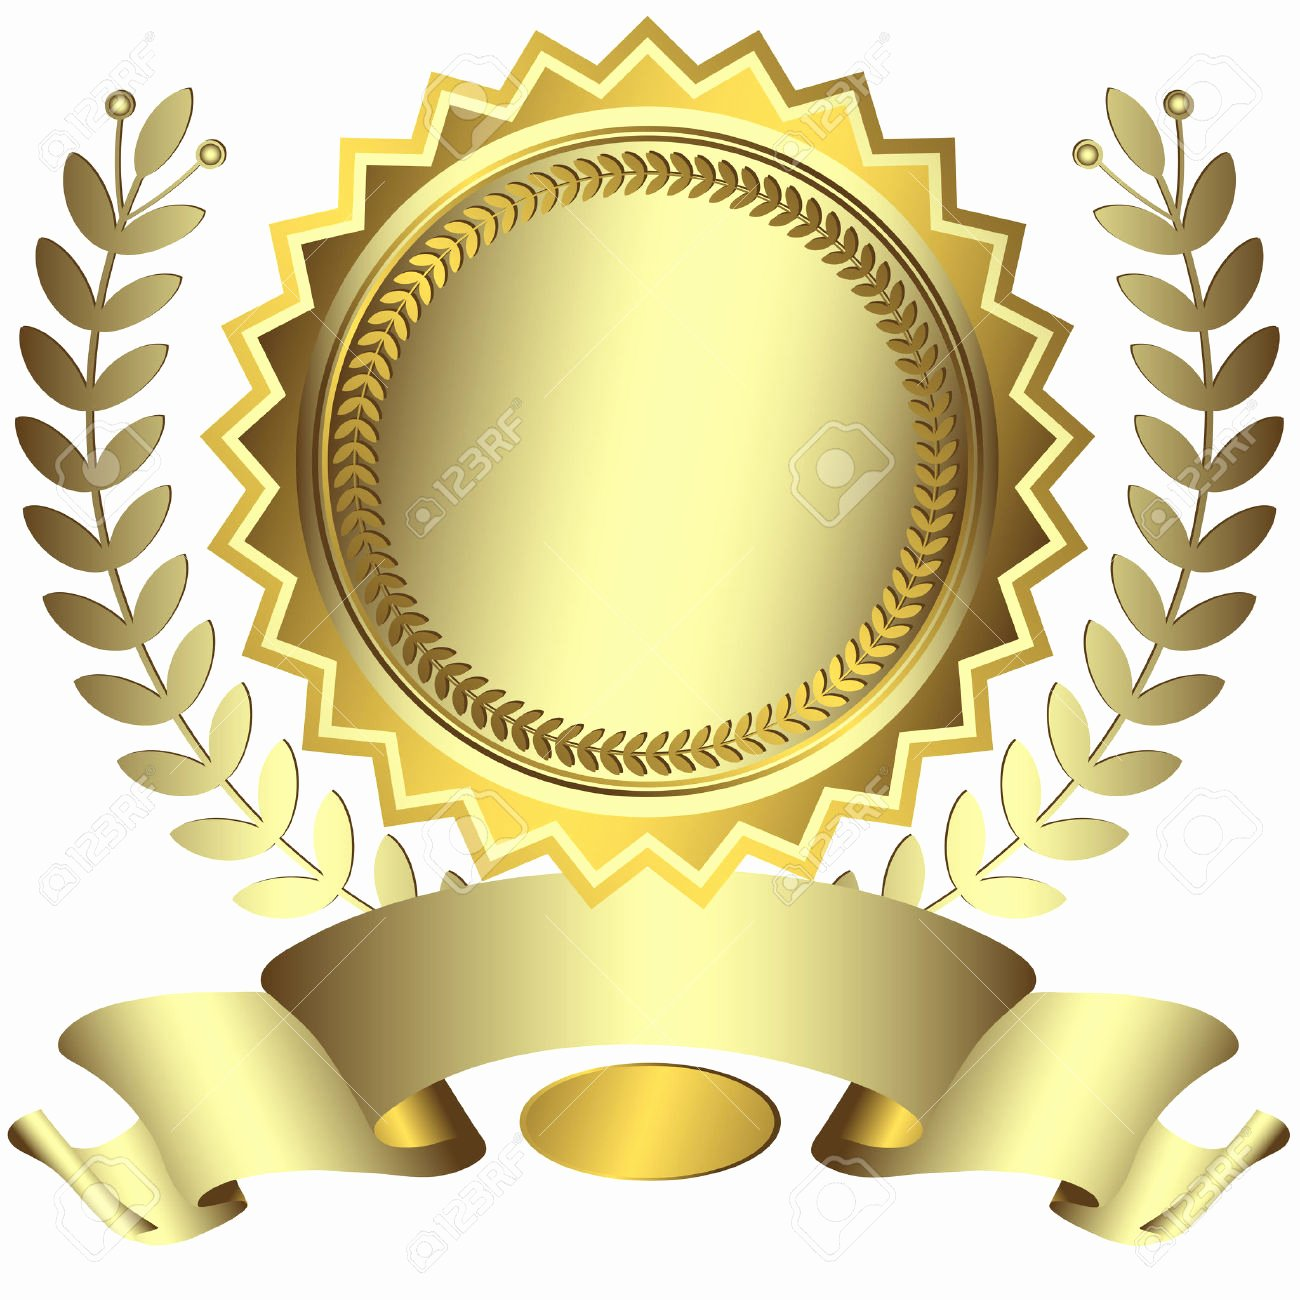 Award Certificate Clip Art Inspirational Free Clipart Award Certificate Trophy Png and Cliparts for